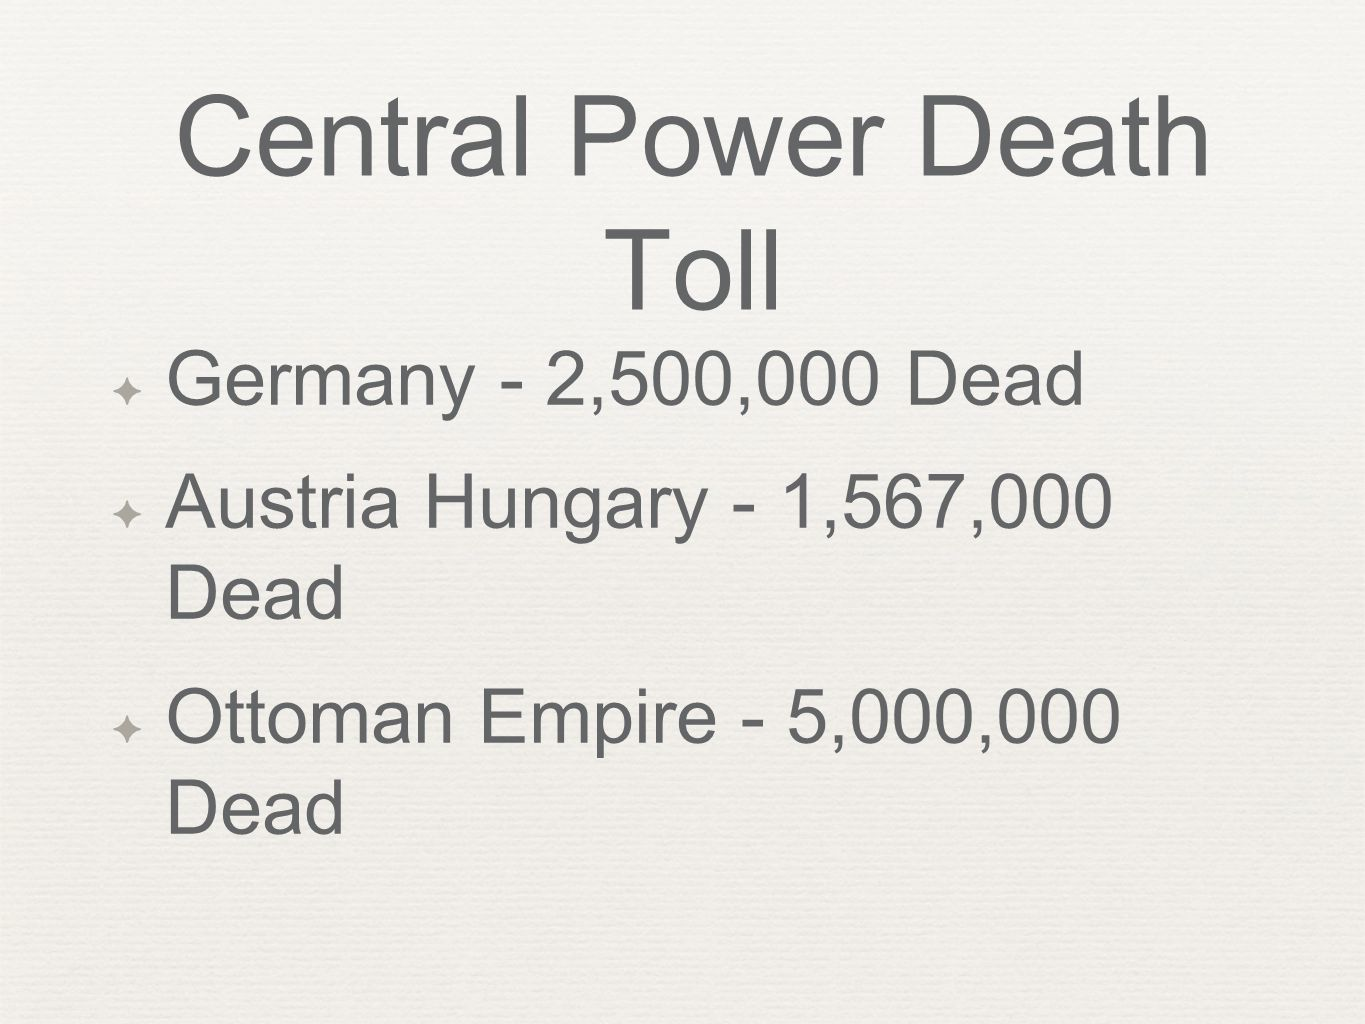 Central Power Death Toll